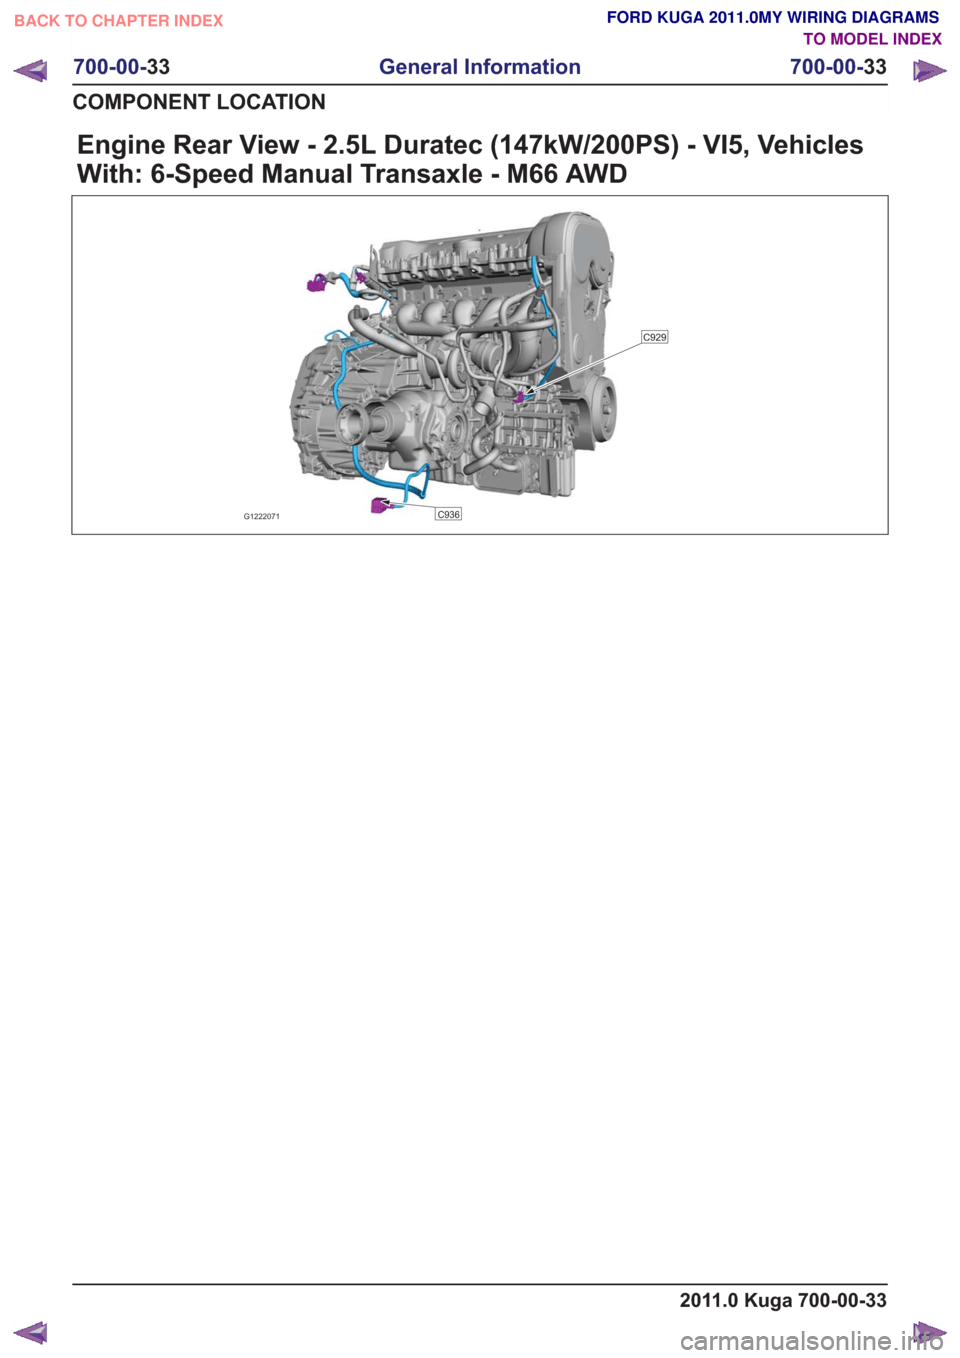 hight resolution of ford kuga 2011 1 g wiring diagram workshop manual page 521